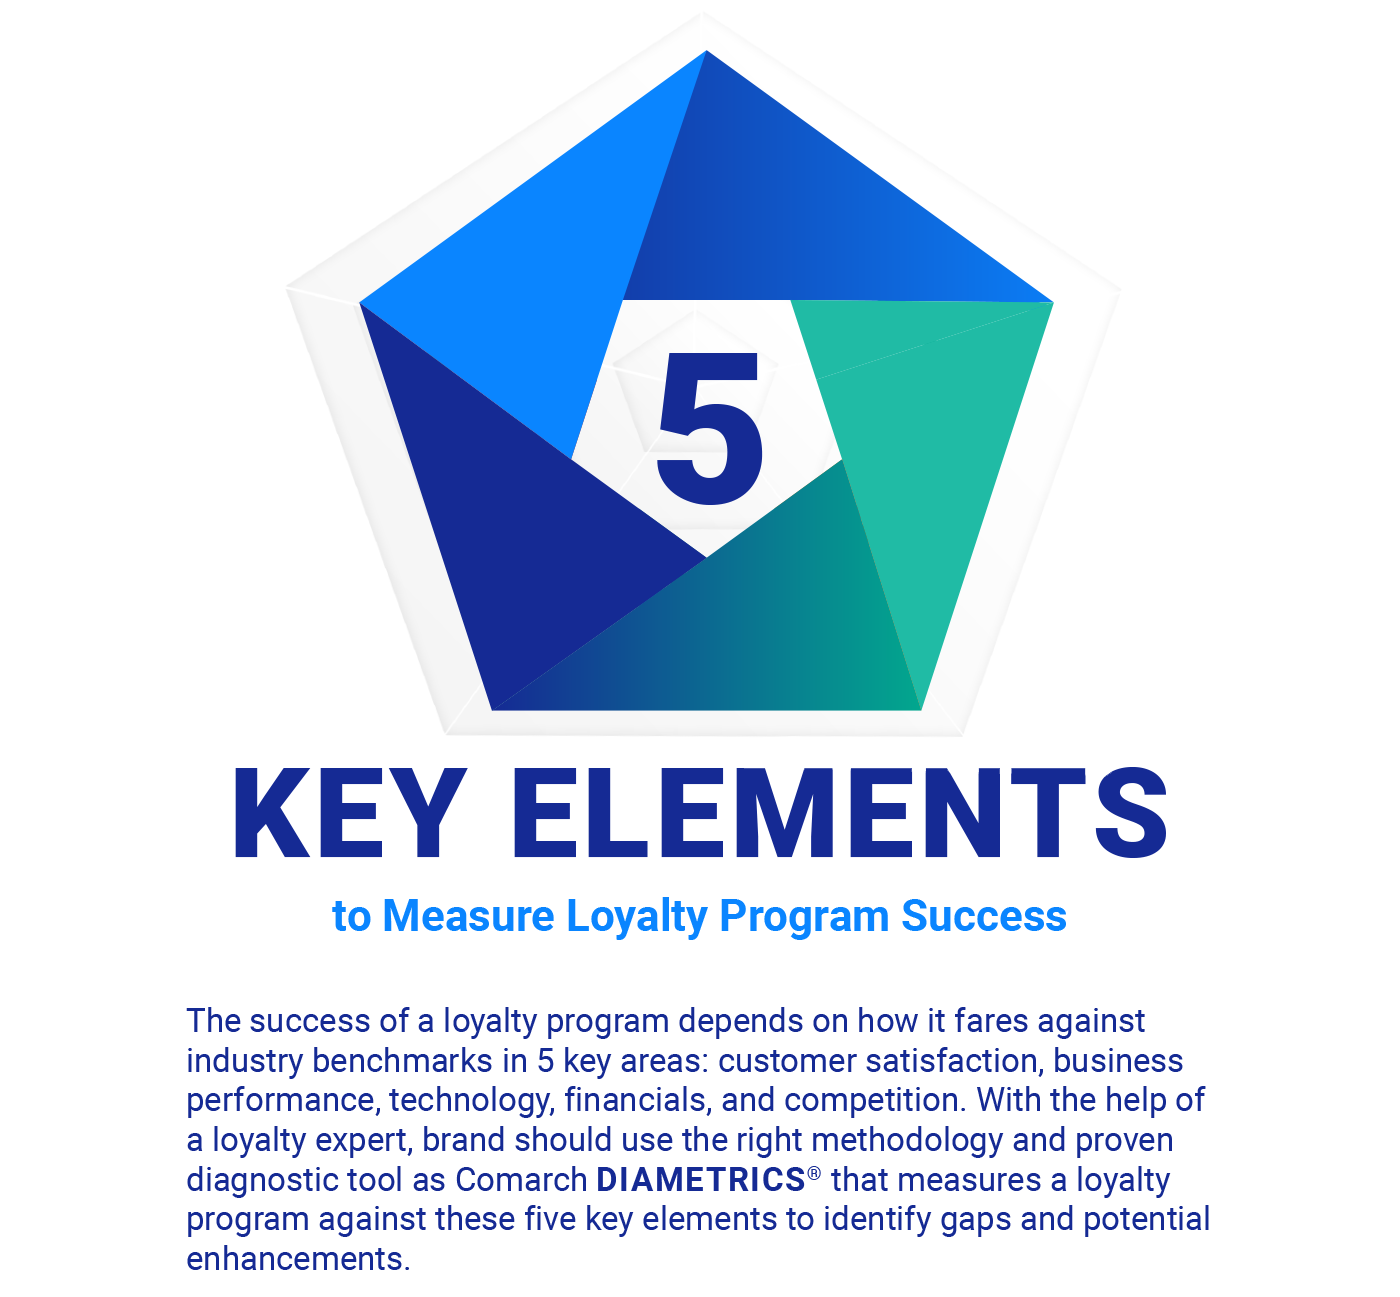 5 Key Elements to Measure Loyalty Program Success